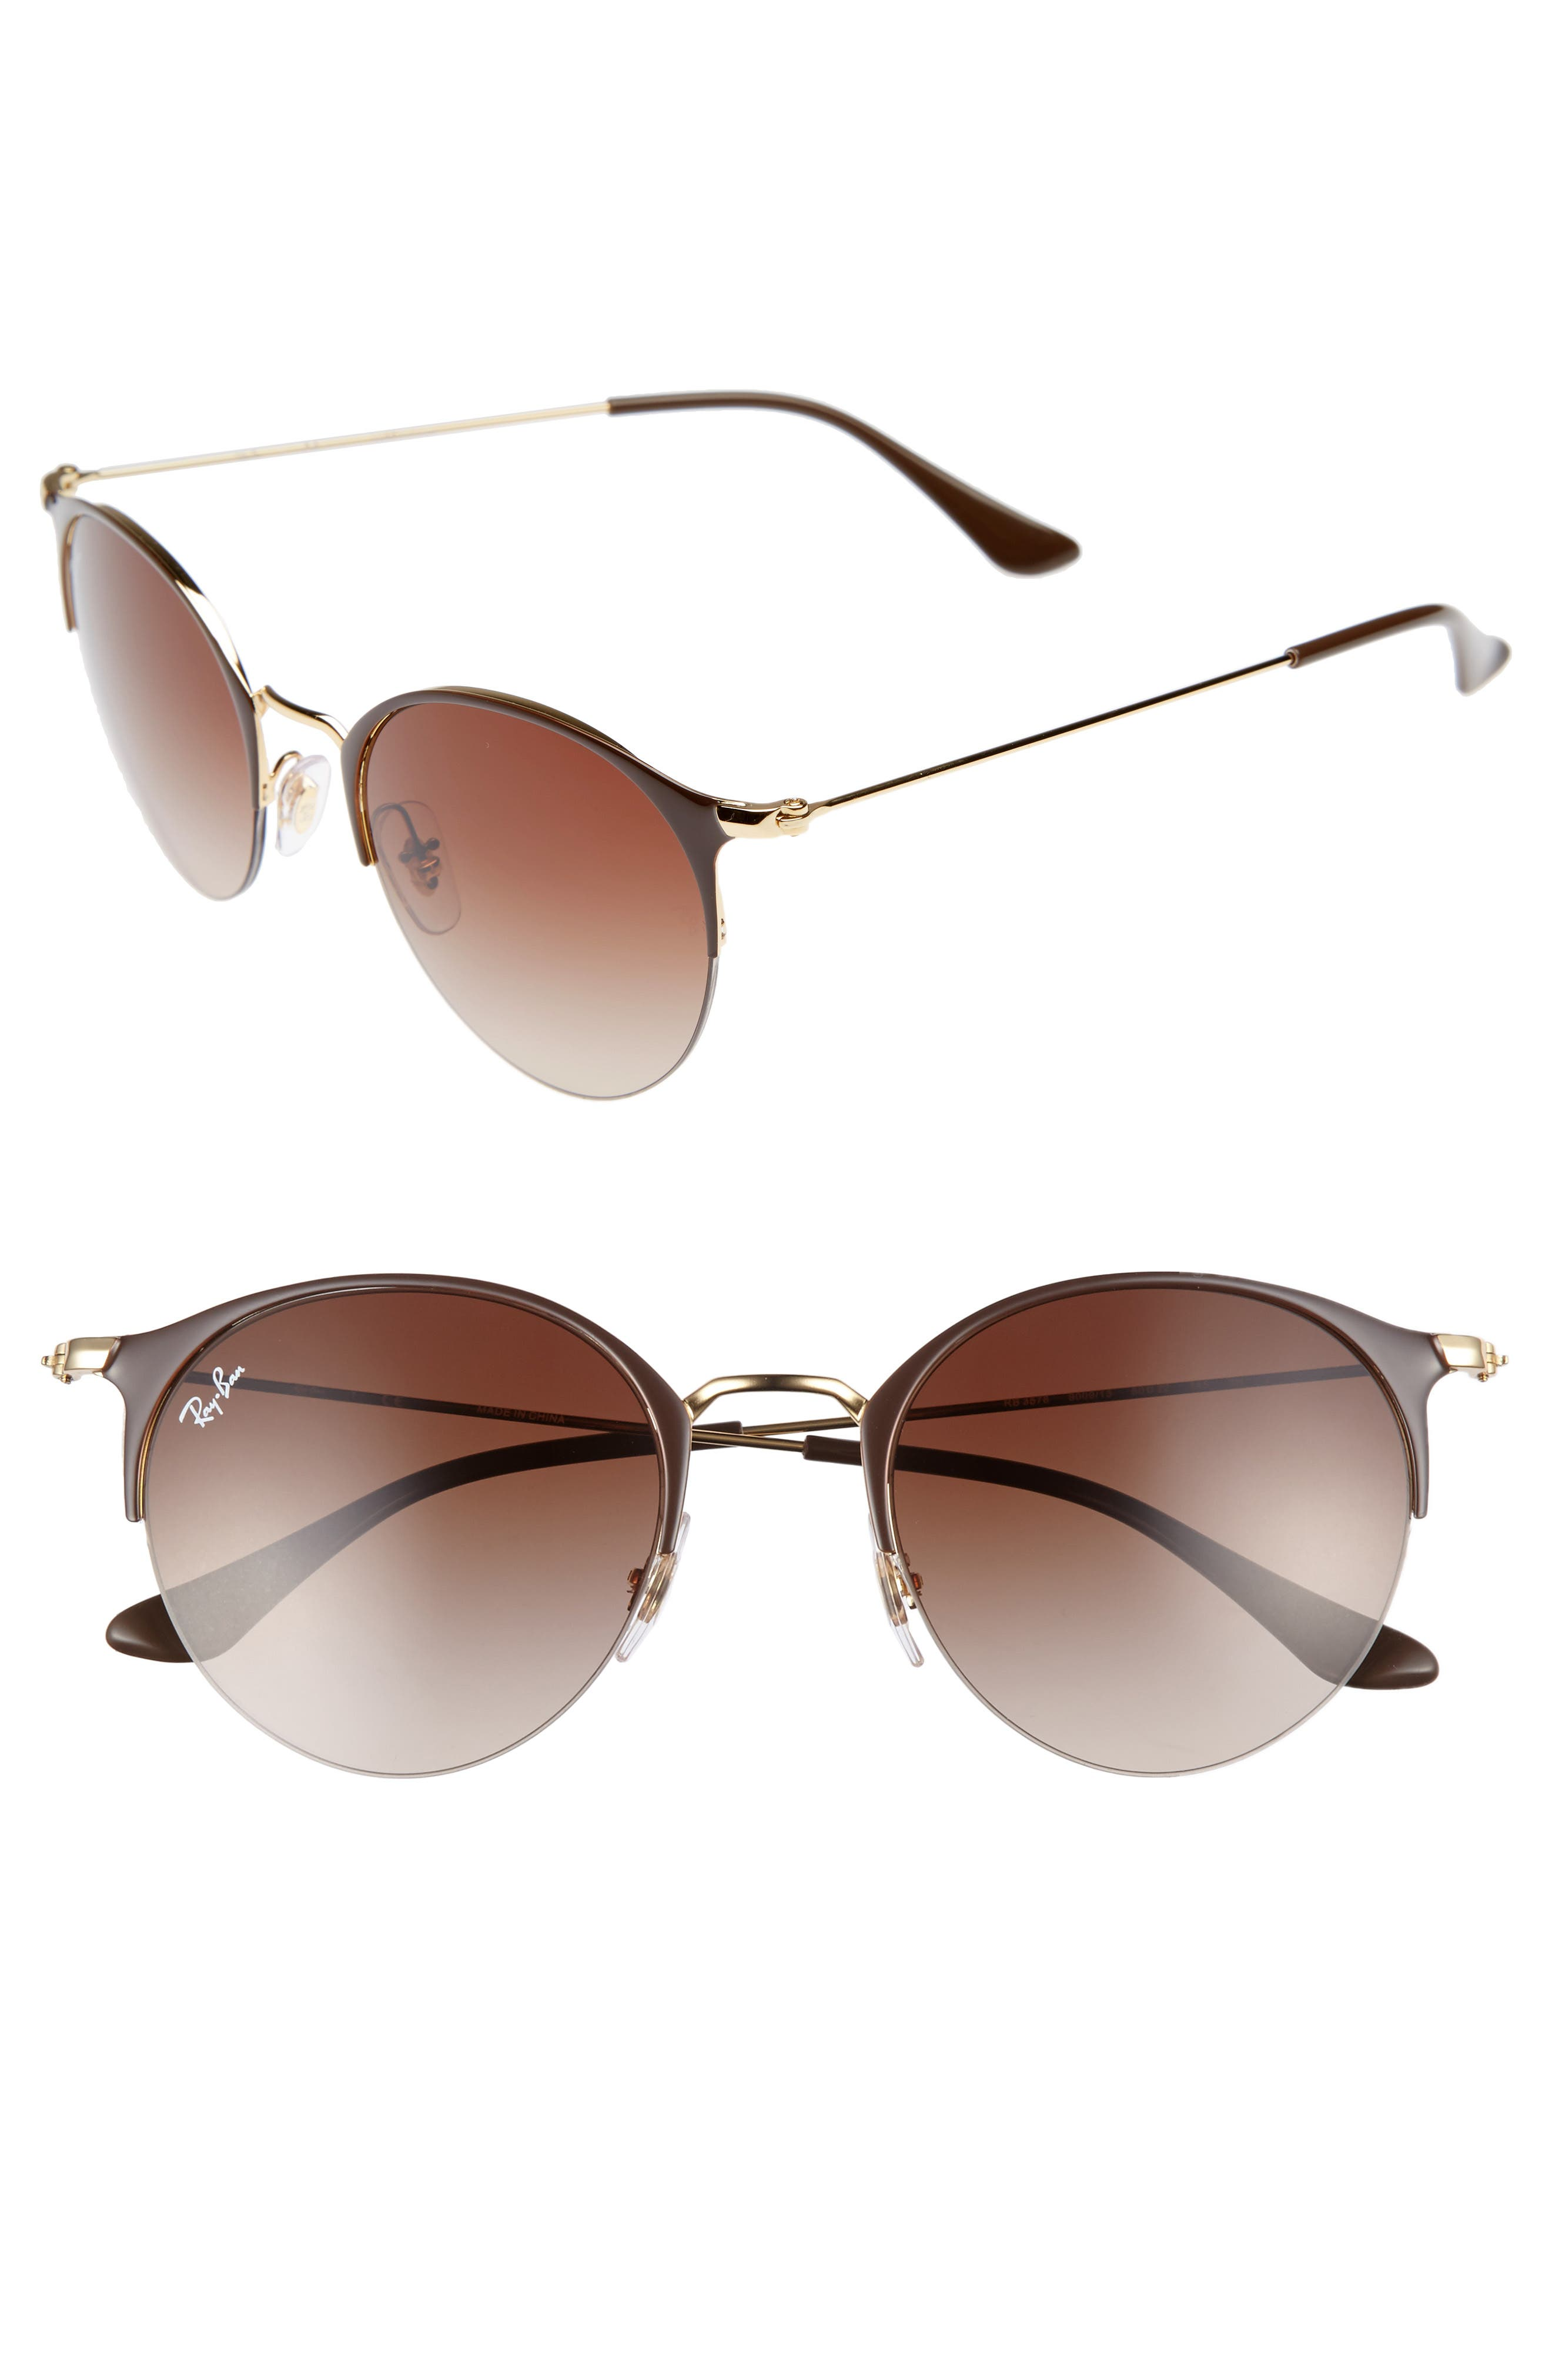 50mm Round Clubmaster Sunglasses,                             Main thumbnail 1, color,                             200